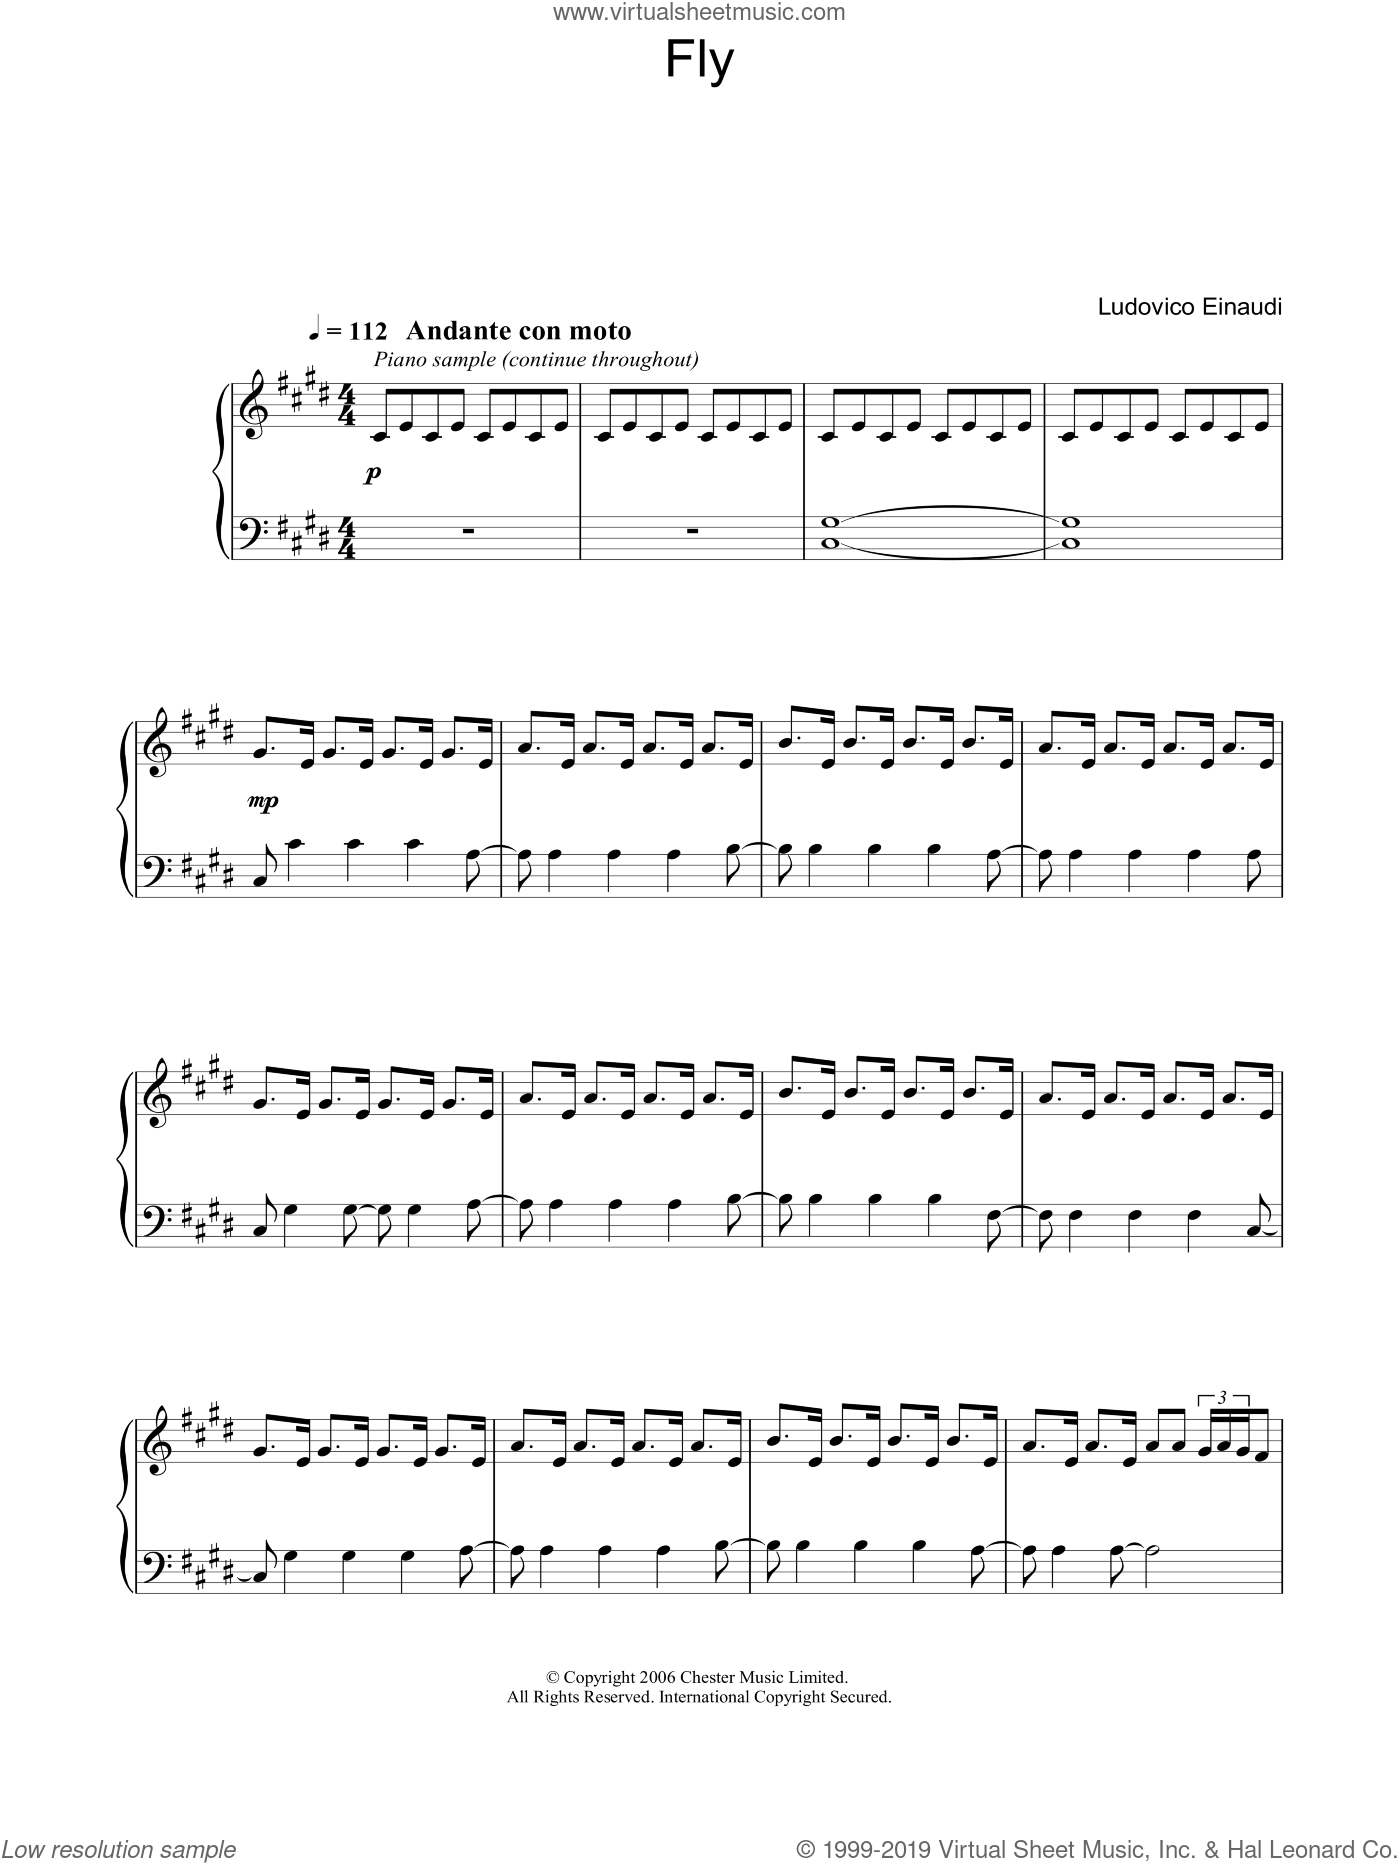 Fly sheet music for piano solo by Ludovico Einaudi